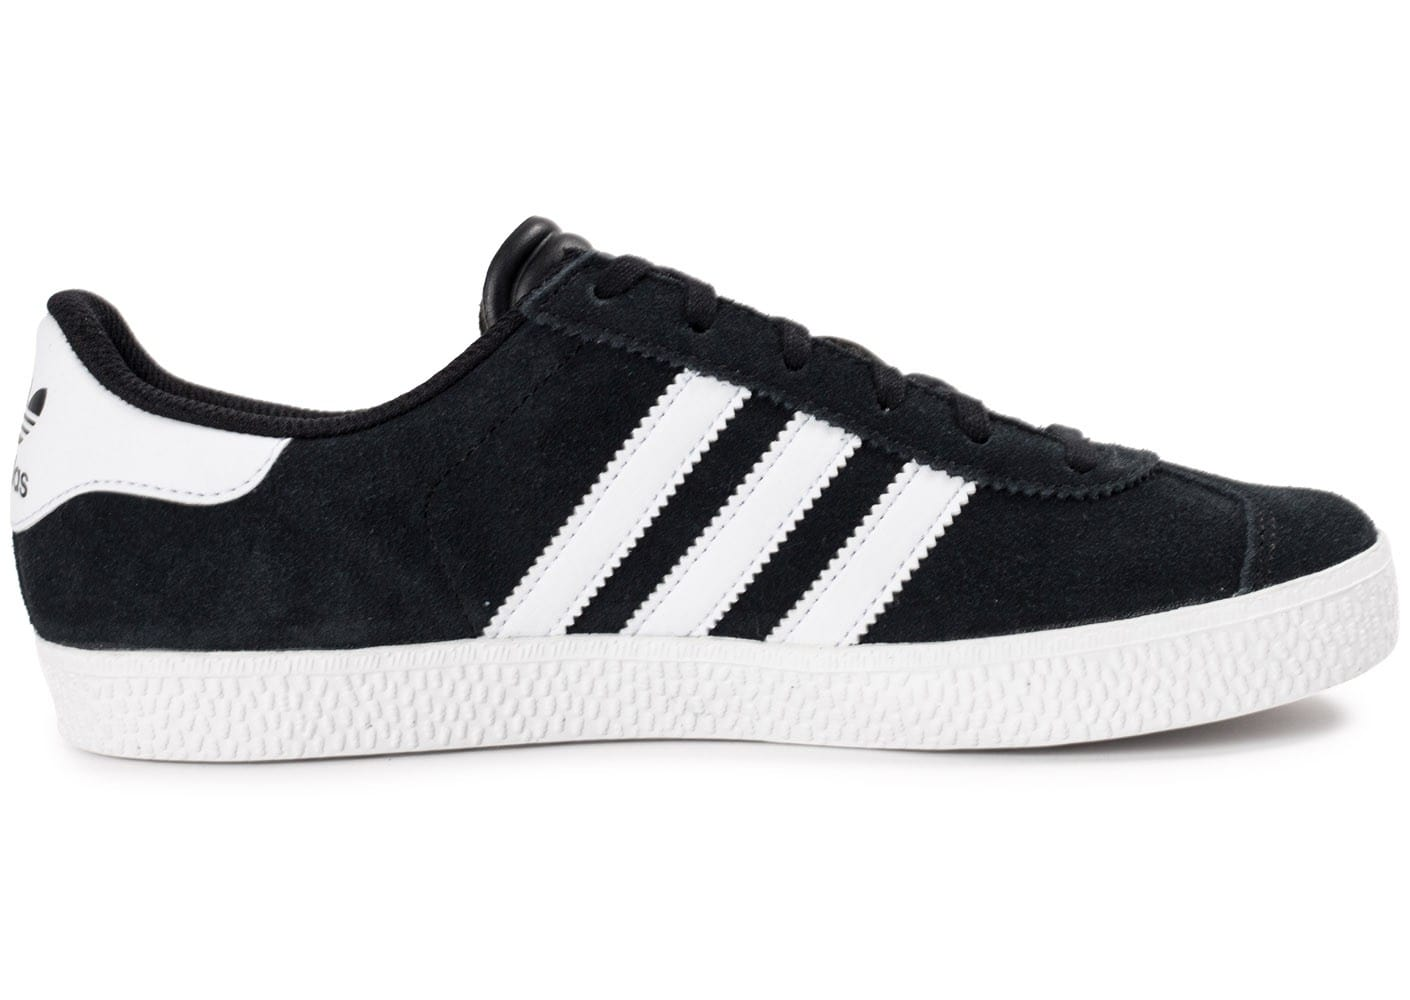 adidas gazelle 2 junior noire et blanche chaussures adidas chausport. Black Bedroom Furniture Sets. Home Design Ideas